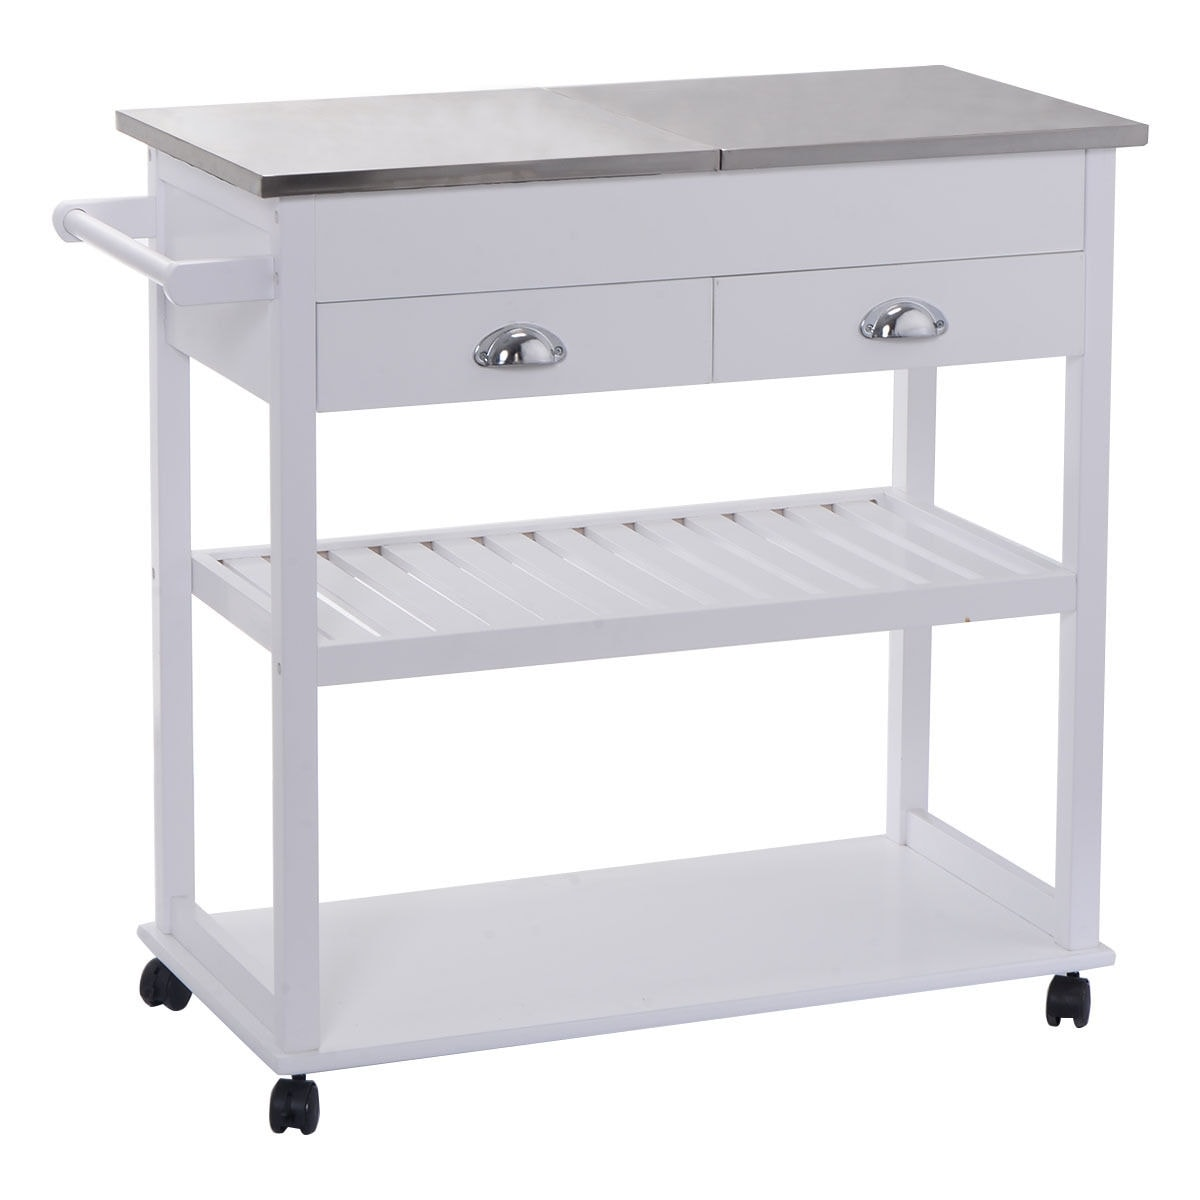 Shop costway white rolling kitchen trolley cart stainless steel flip top w drawers casters free shipping today overstock com 16745928